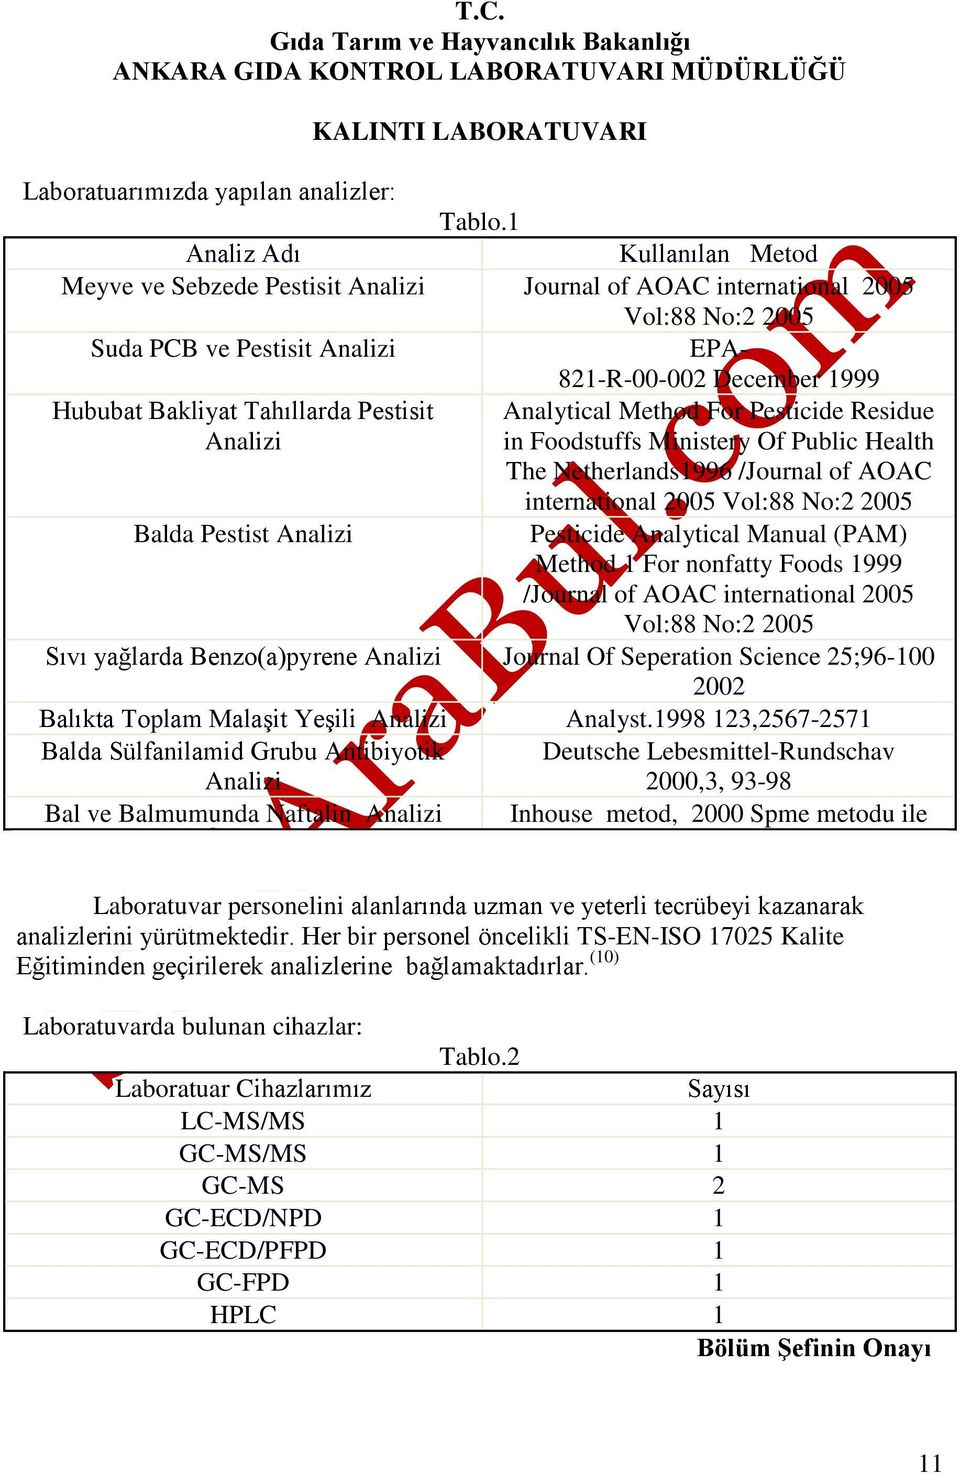 Tahıllarda Pestisit Analytical Method For Pesticide Residue Analizi in Foodstuffs Ministery Of Public Health The Netherlands1996 /Journal of AOAC Balda Pestist Analizi international 2005 Vol:88 No:2